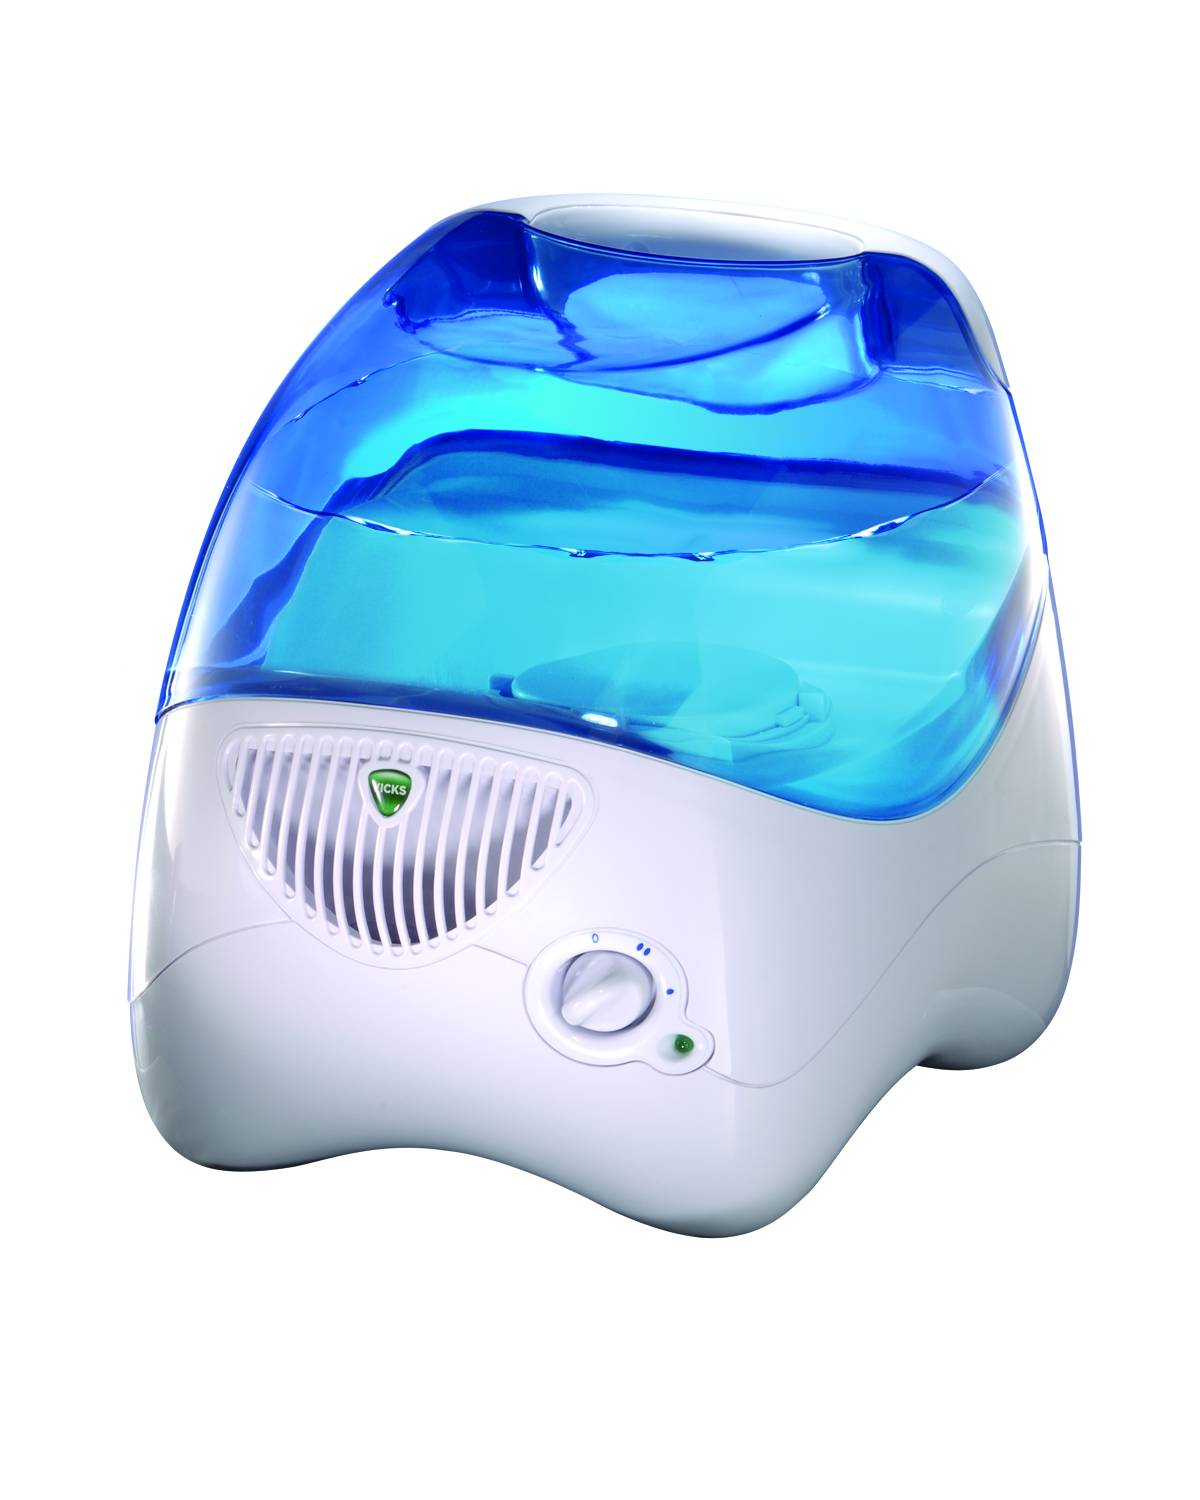 Vicks Filter Free Cool Mist Humidifier 1.0 CT Walmart.com #0A2EC1